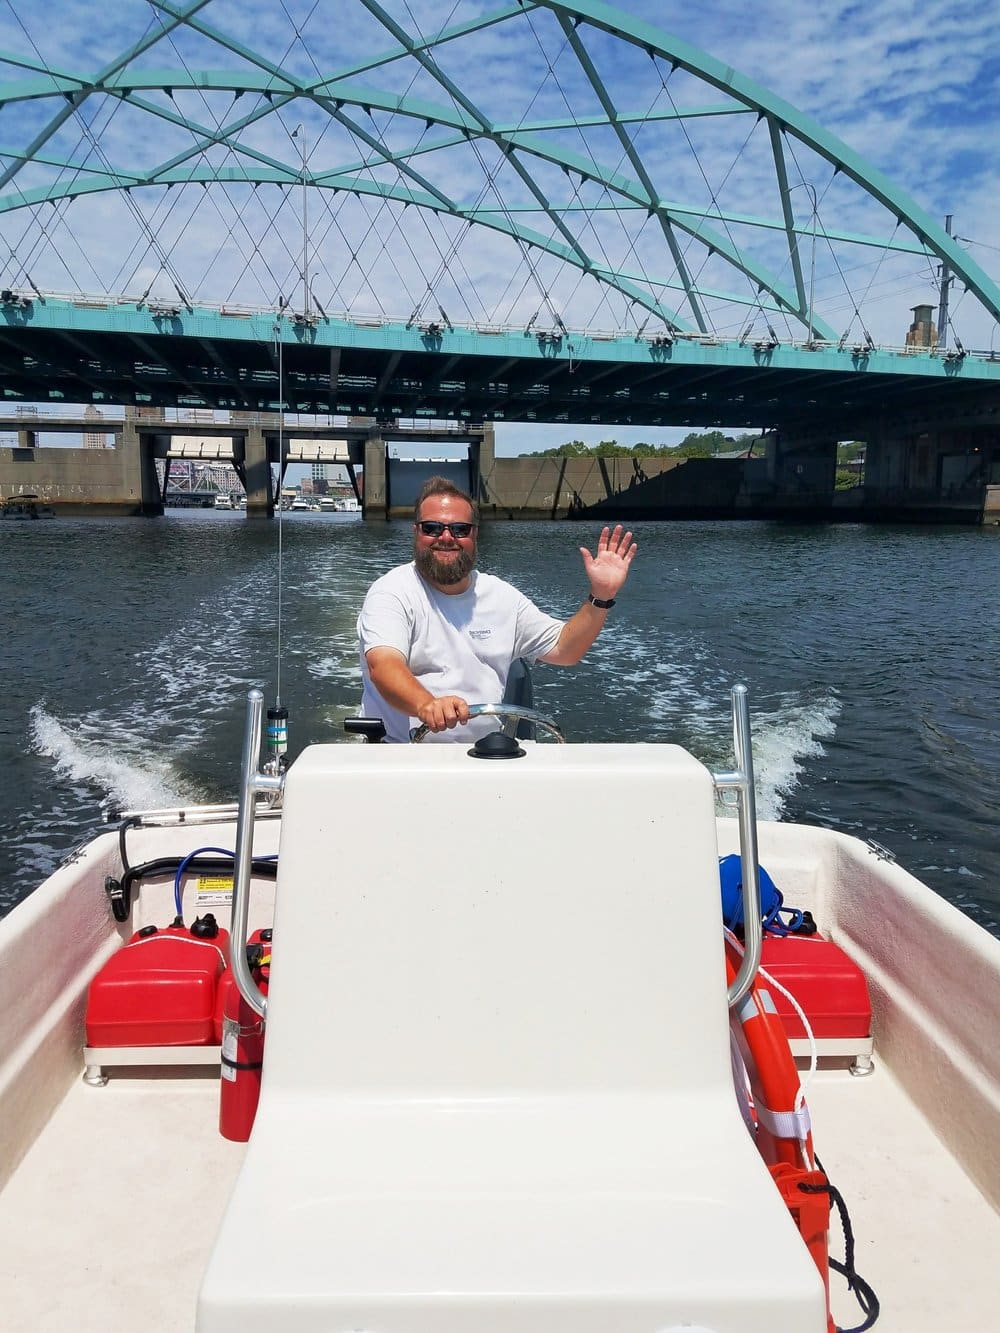 Captain Tom of the Providence River Boat Company out cruising around.